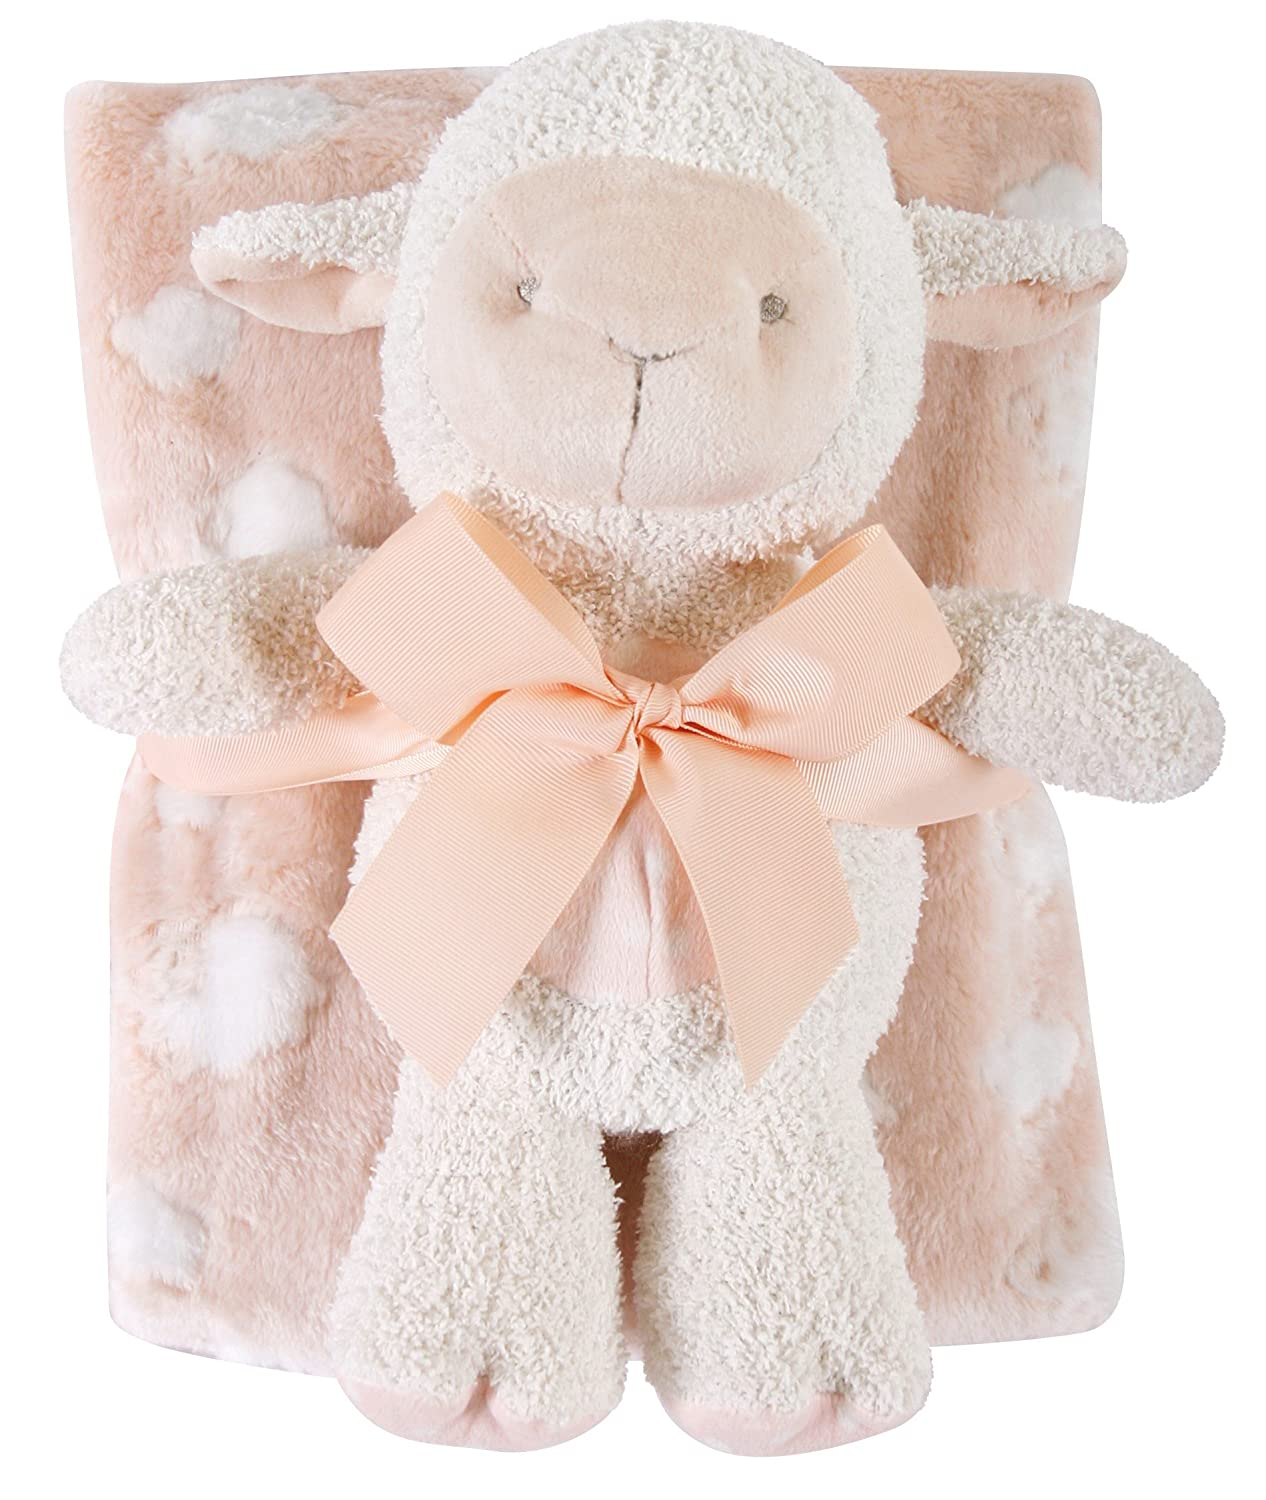 Gray Lamb Stephan Baby Snuggle Fleece Crib Blanket and Plush Toy Set Available in 13 Designs